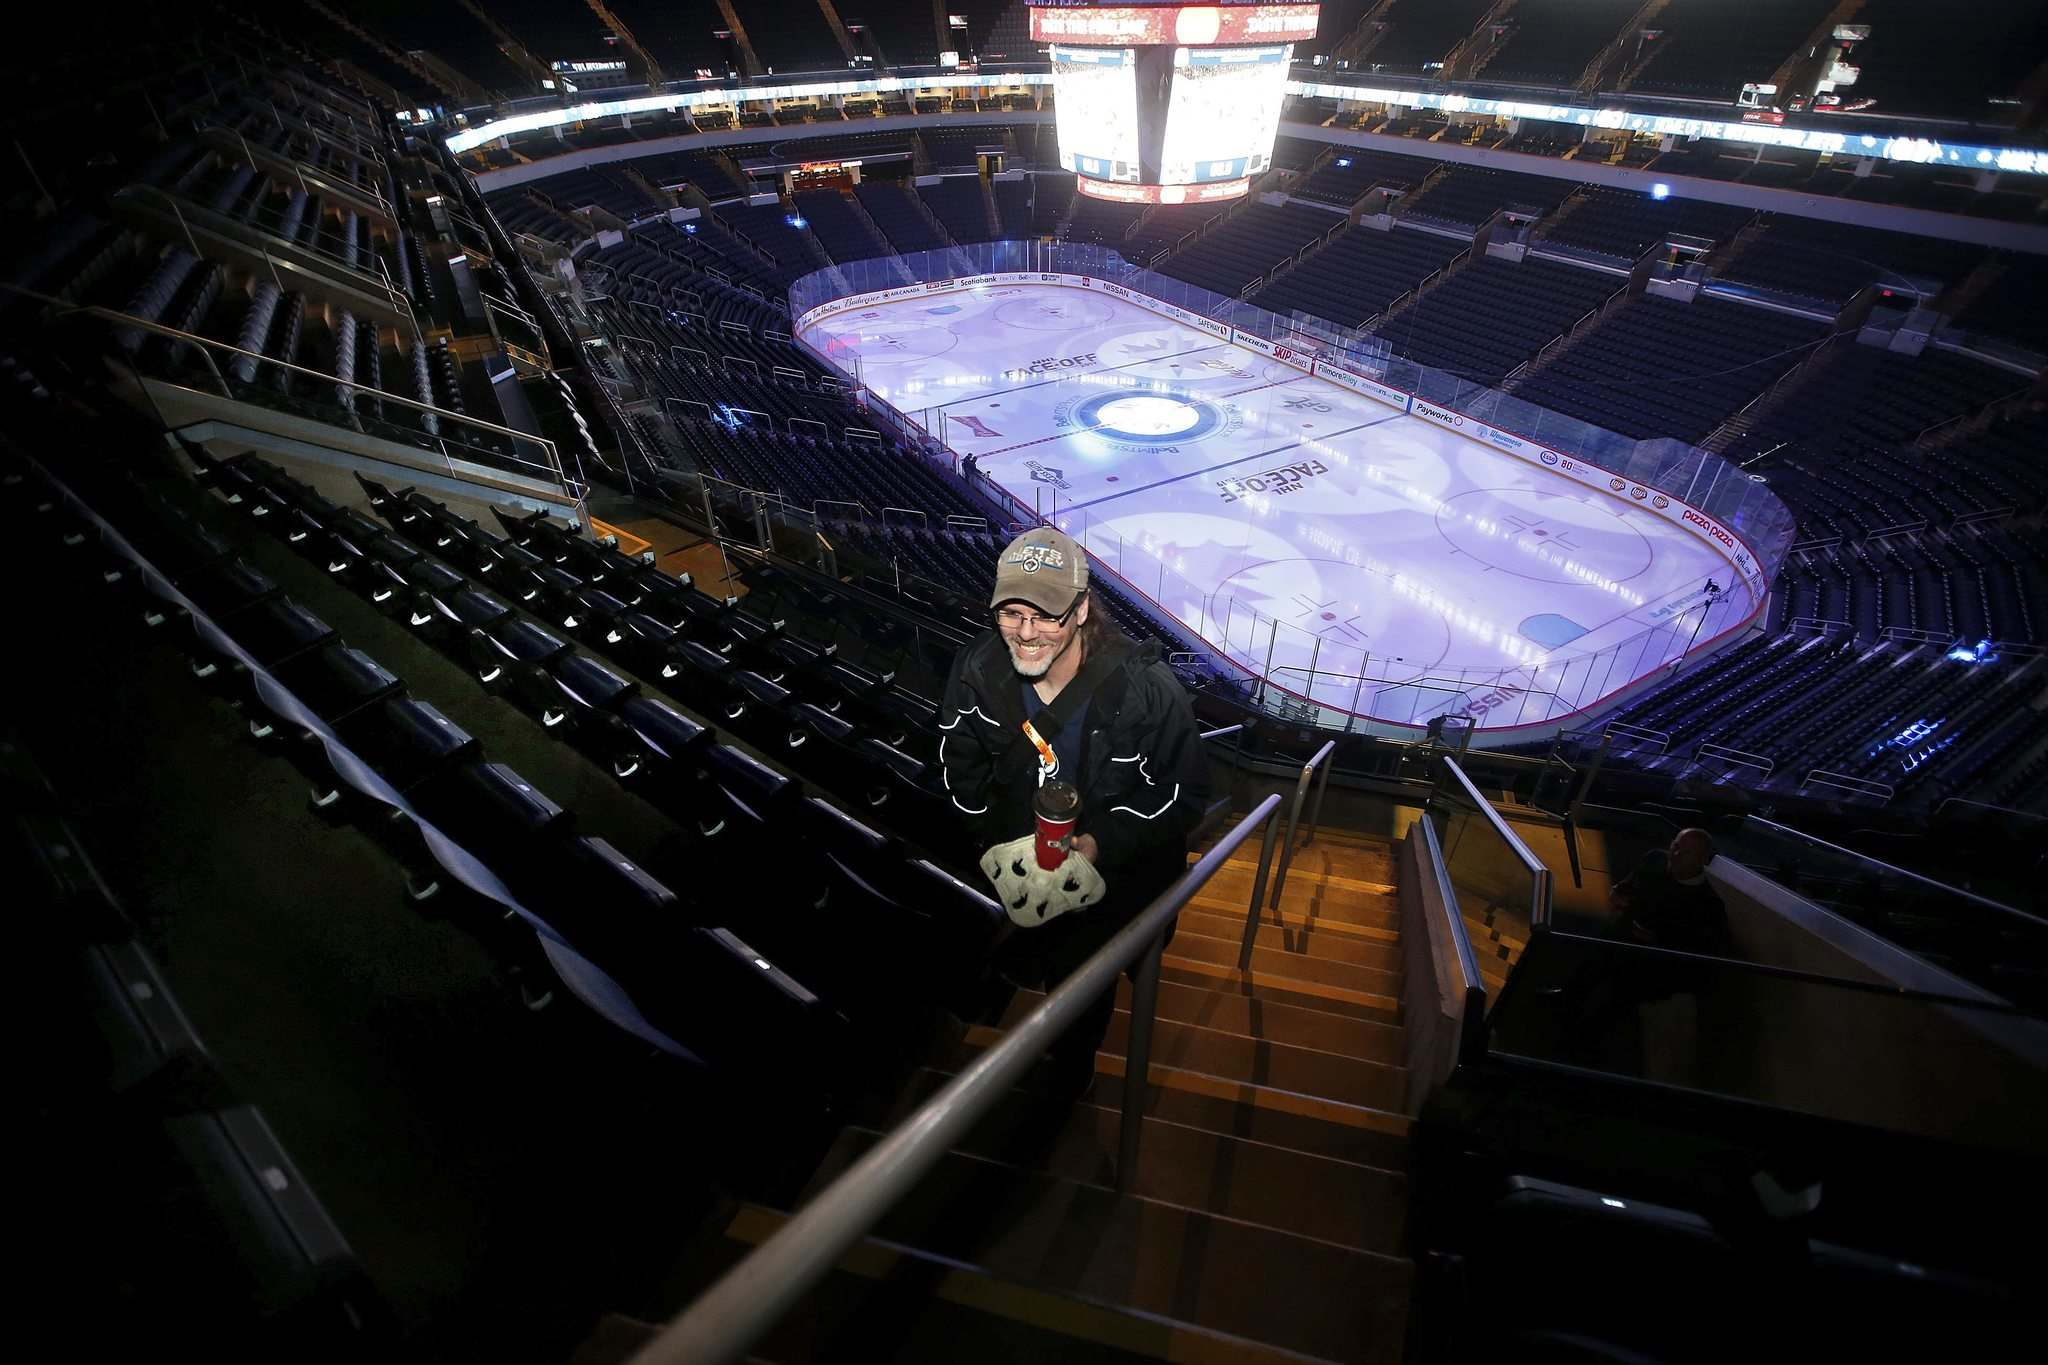 JOHN WOODS / WINNIPEG FREE PRESS</p><p>Eccles climbs the stairs to the top row of Section 317, where the organist's 'hobbit hole' is located.</p>